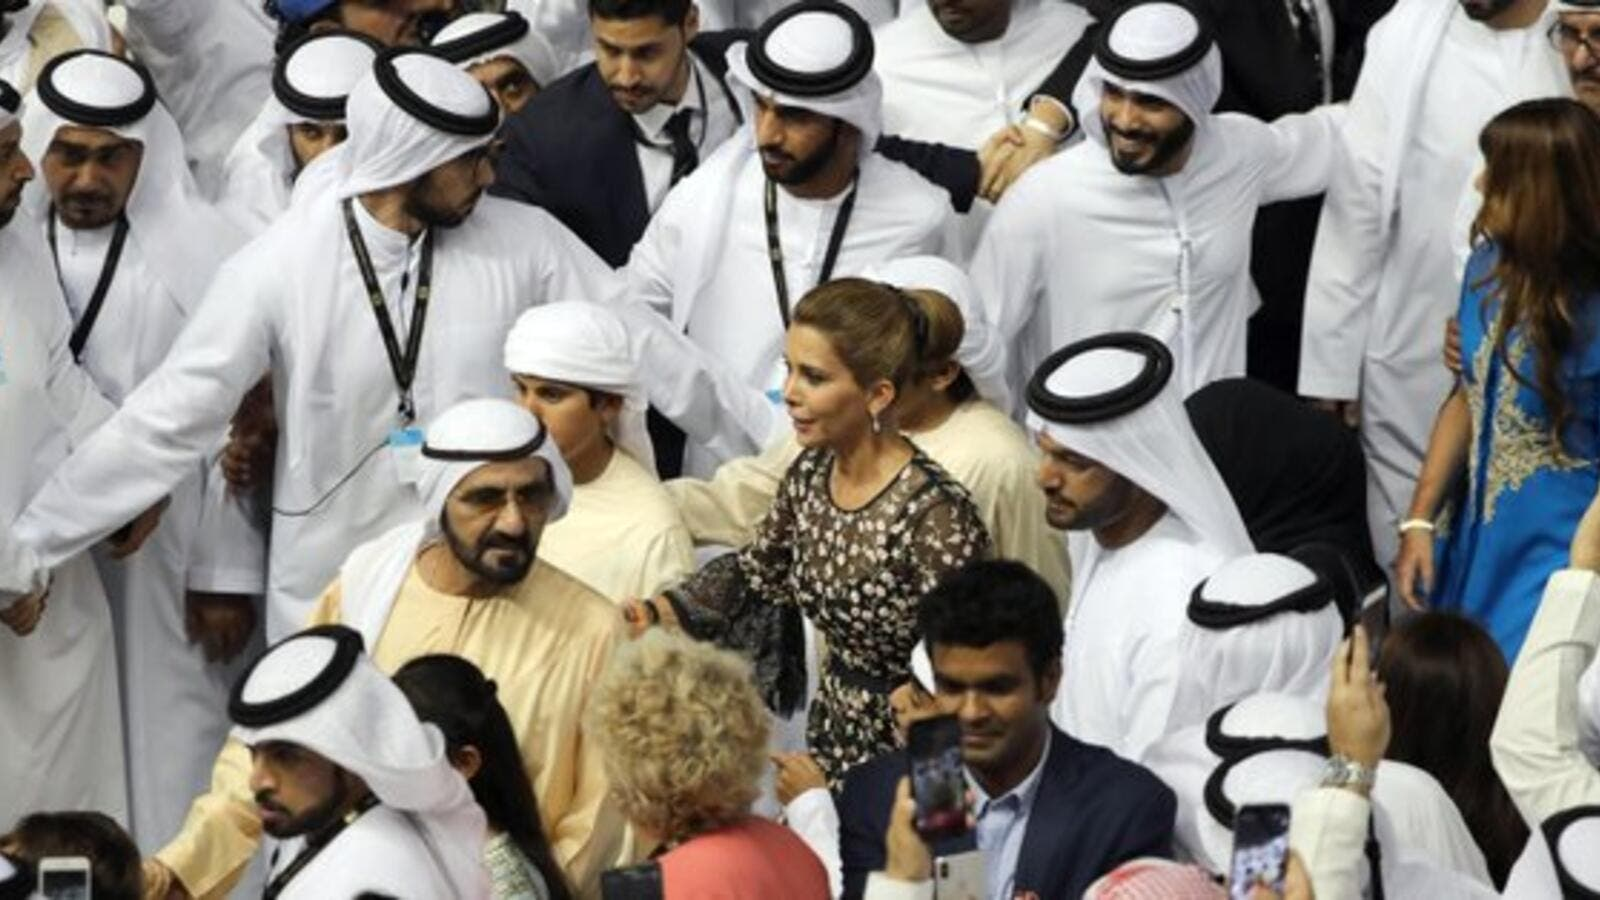 Image result for Revealed: Dubai ruler suspected his estranged wife Princess Haya had 'inappropriate contact' with her British bodyguard when he found them together during surprise visit to their £85m London home